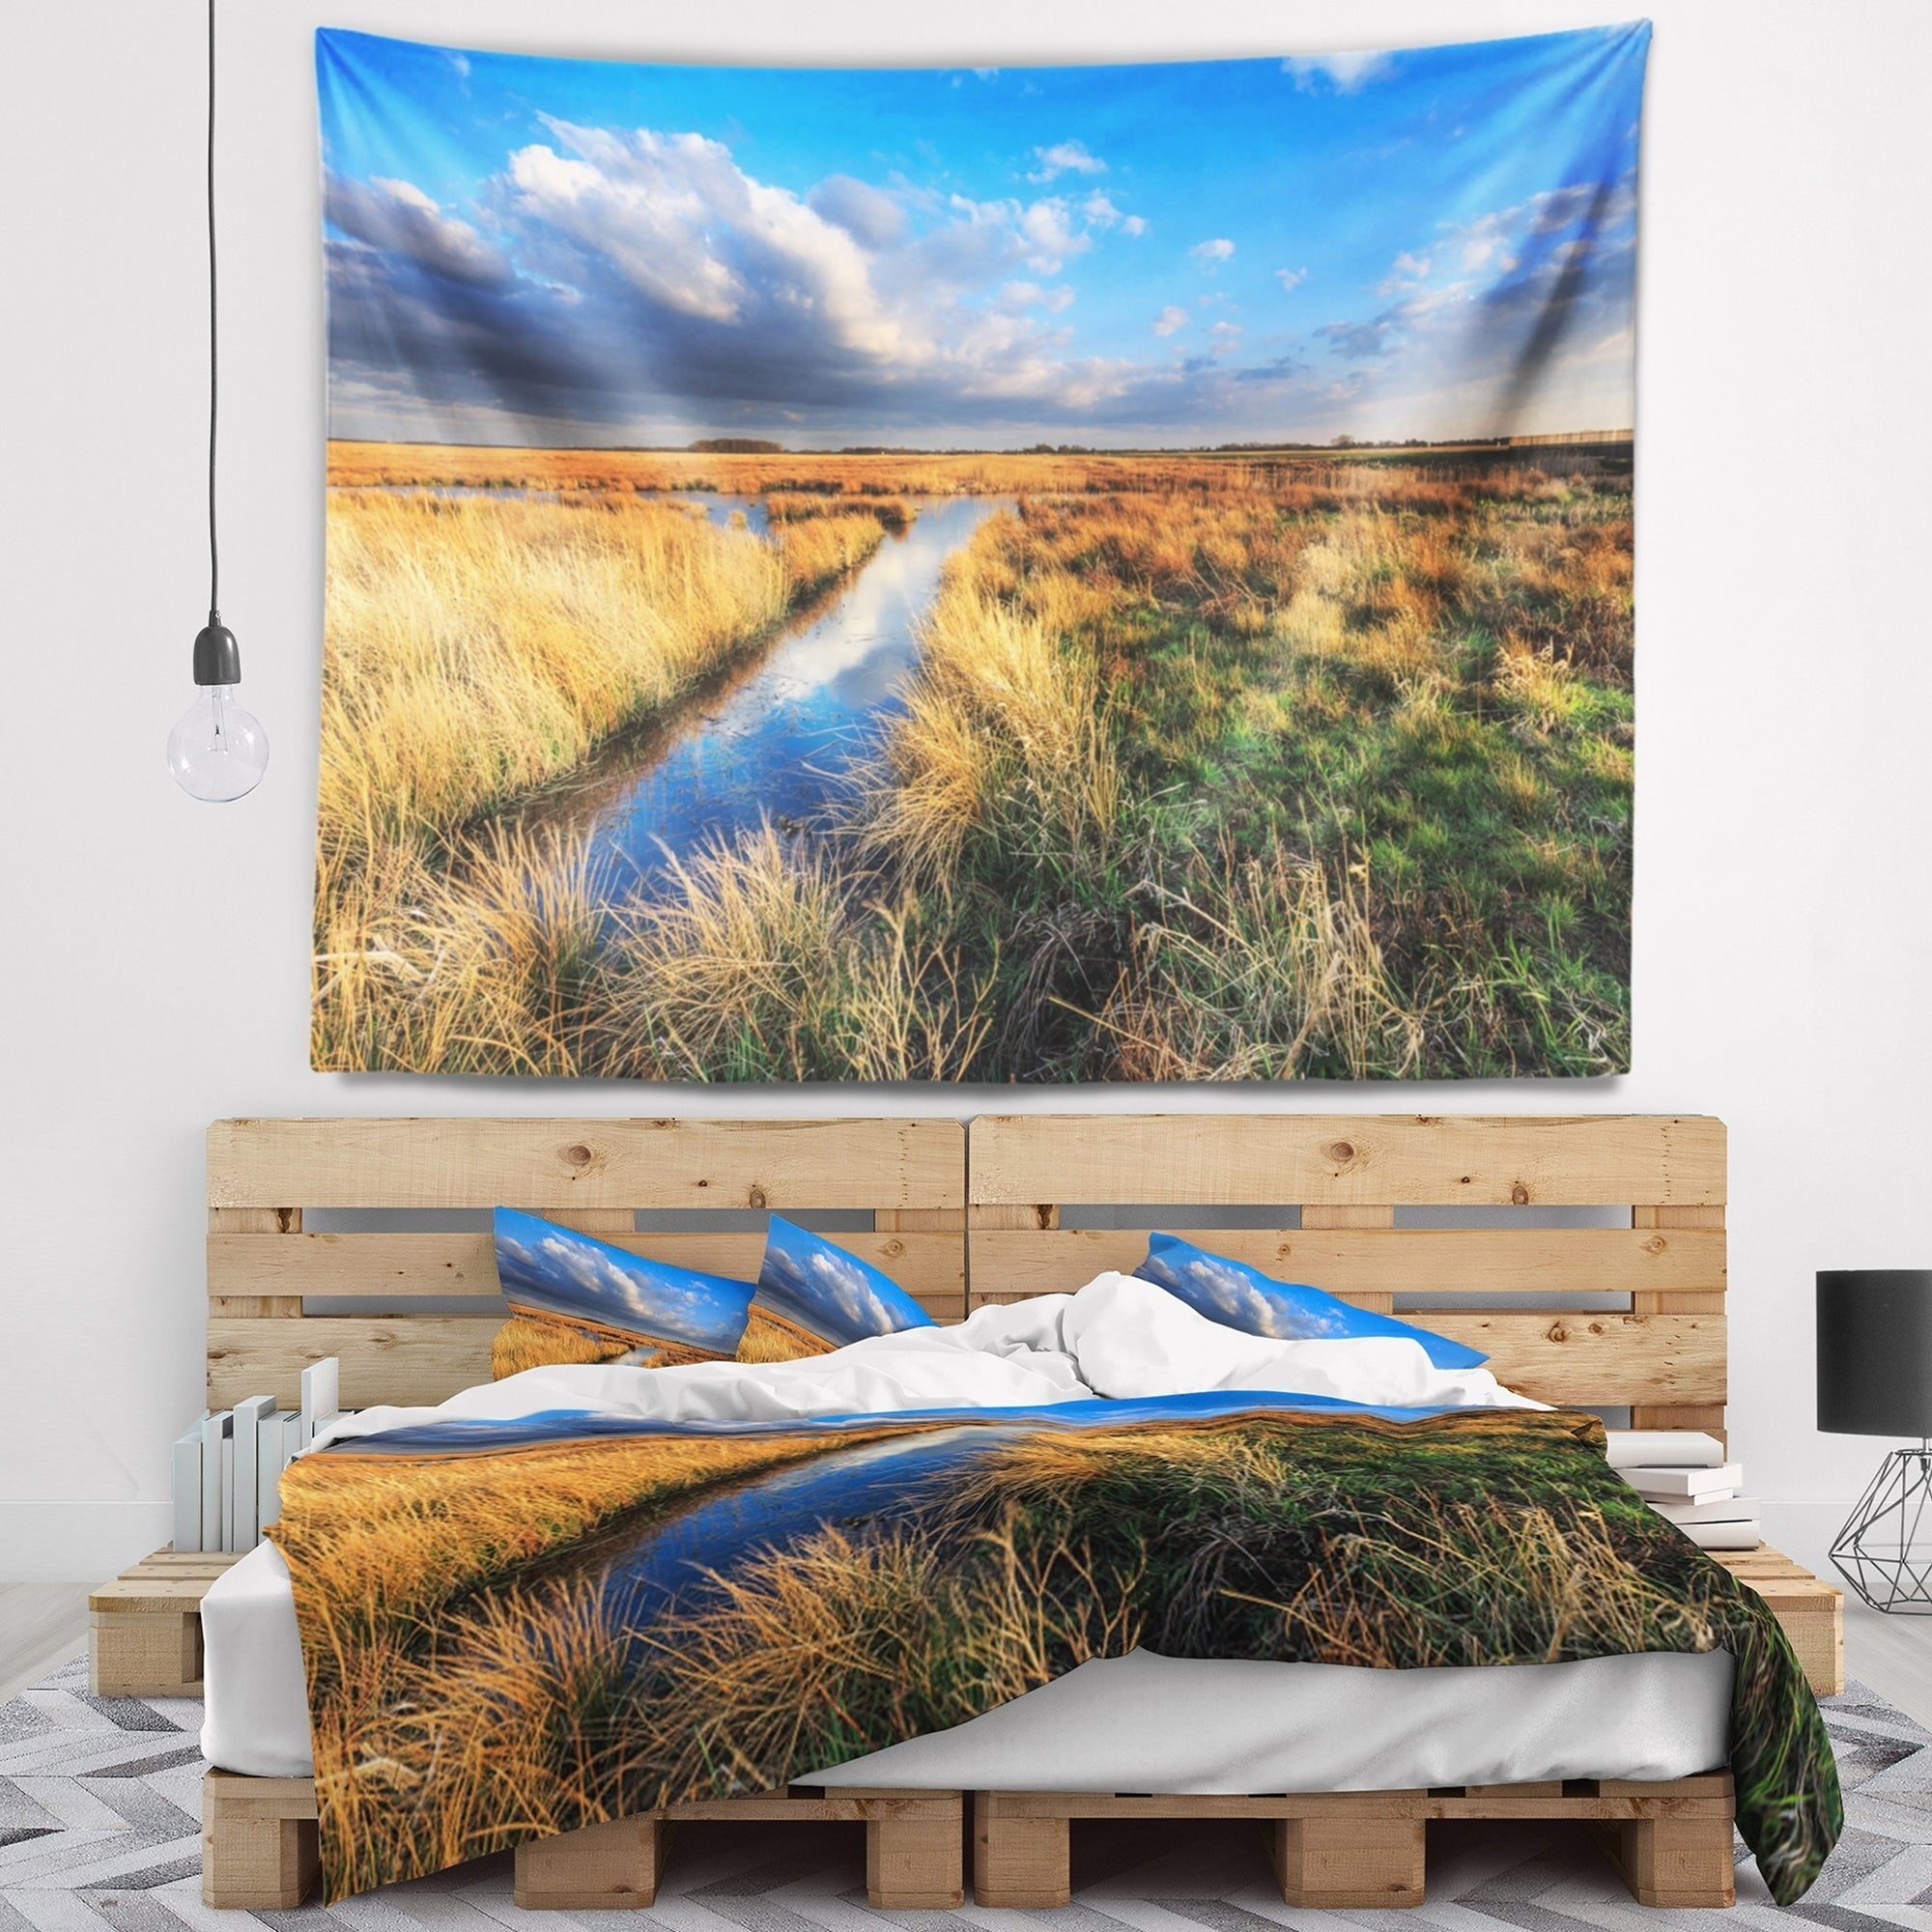 x 68 in x Large: 80 in Designart TAP14801-80-68 Beautiful Meadow with Blue Sky Landscape Tapestry Blanket D/écor Wall Art for Home and Office Created on Lightweight Polyester Fabric